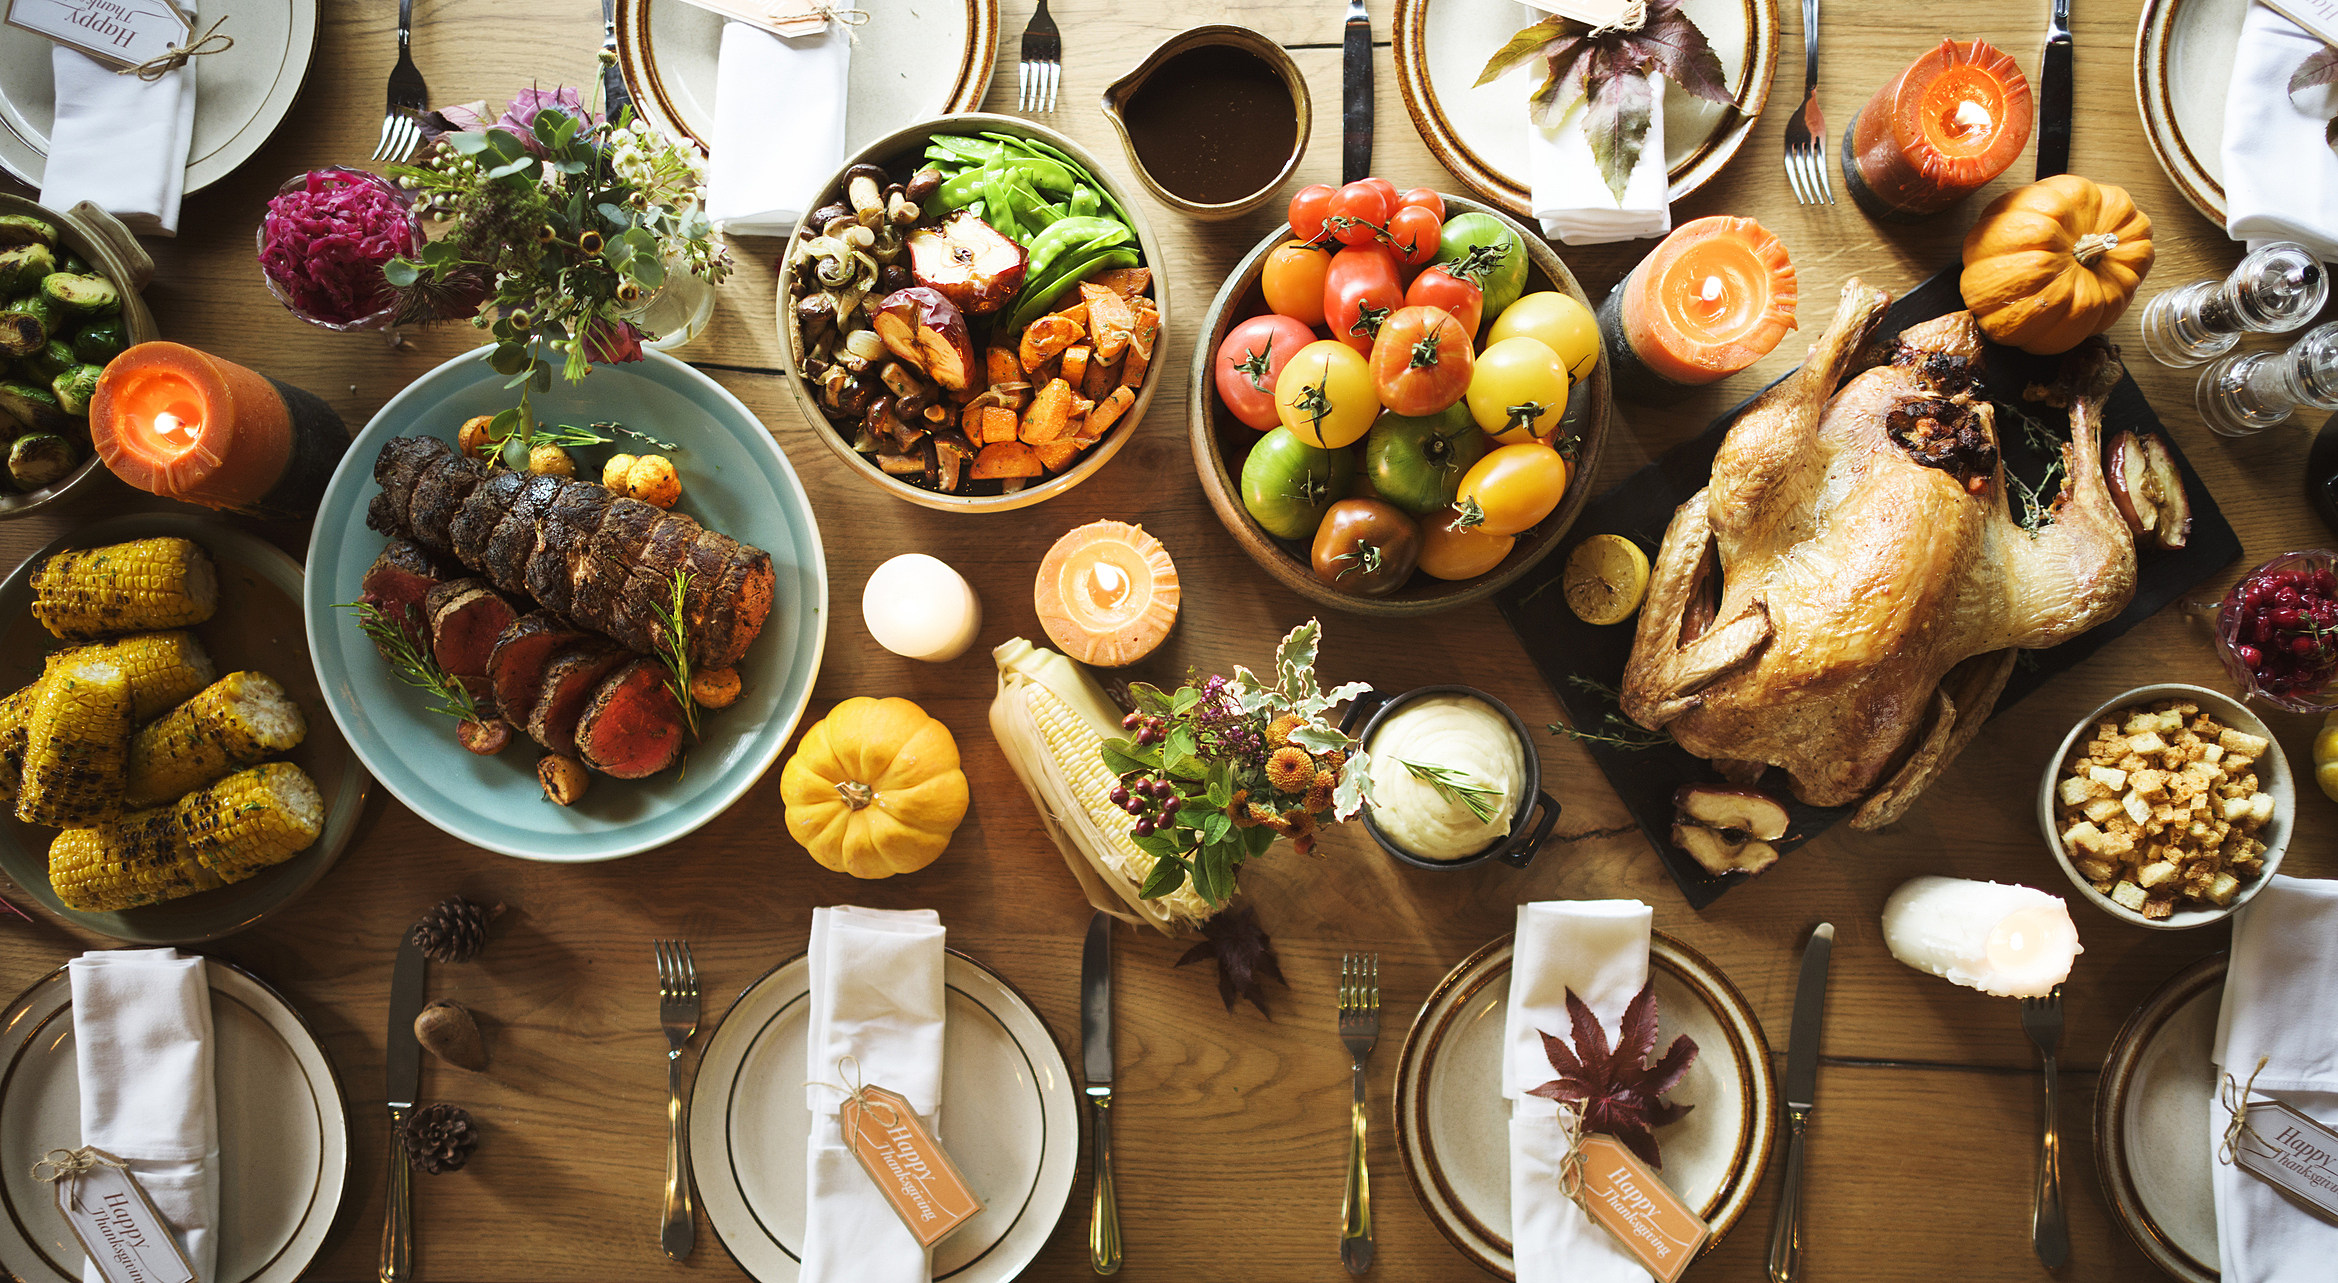 What Is Your Favorite Thanksgiving Dish